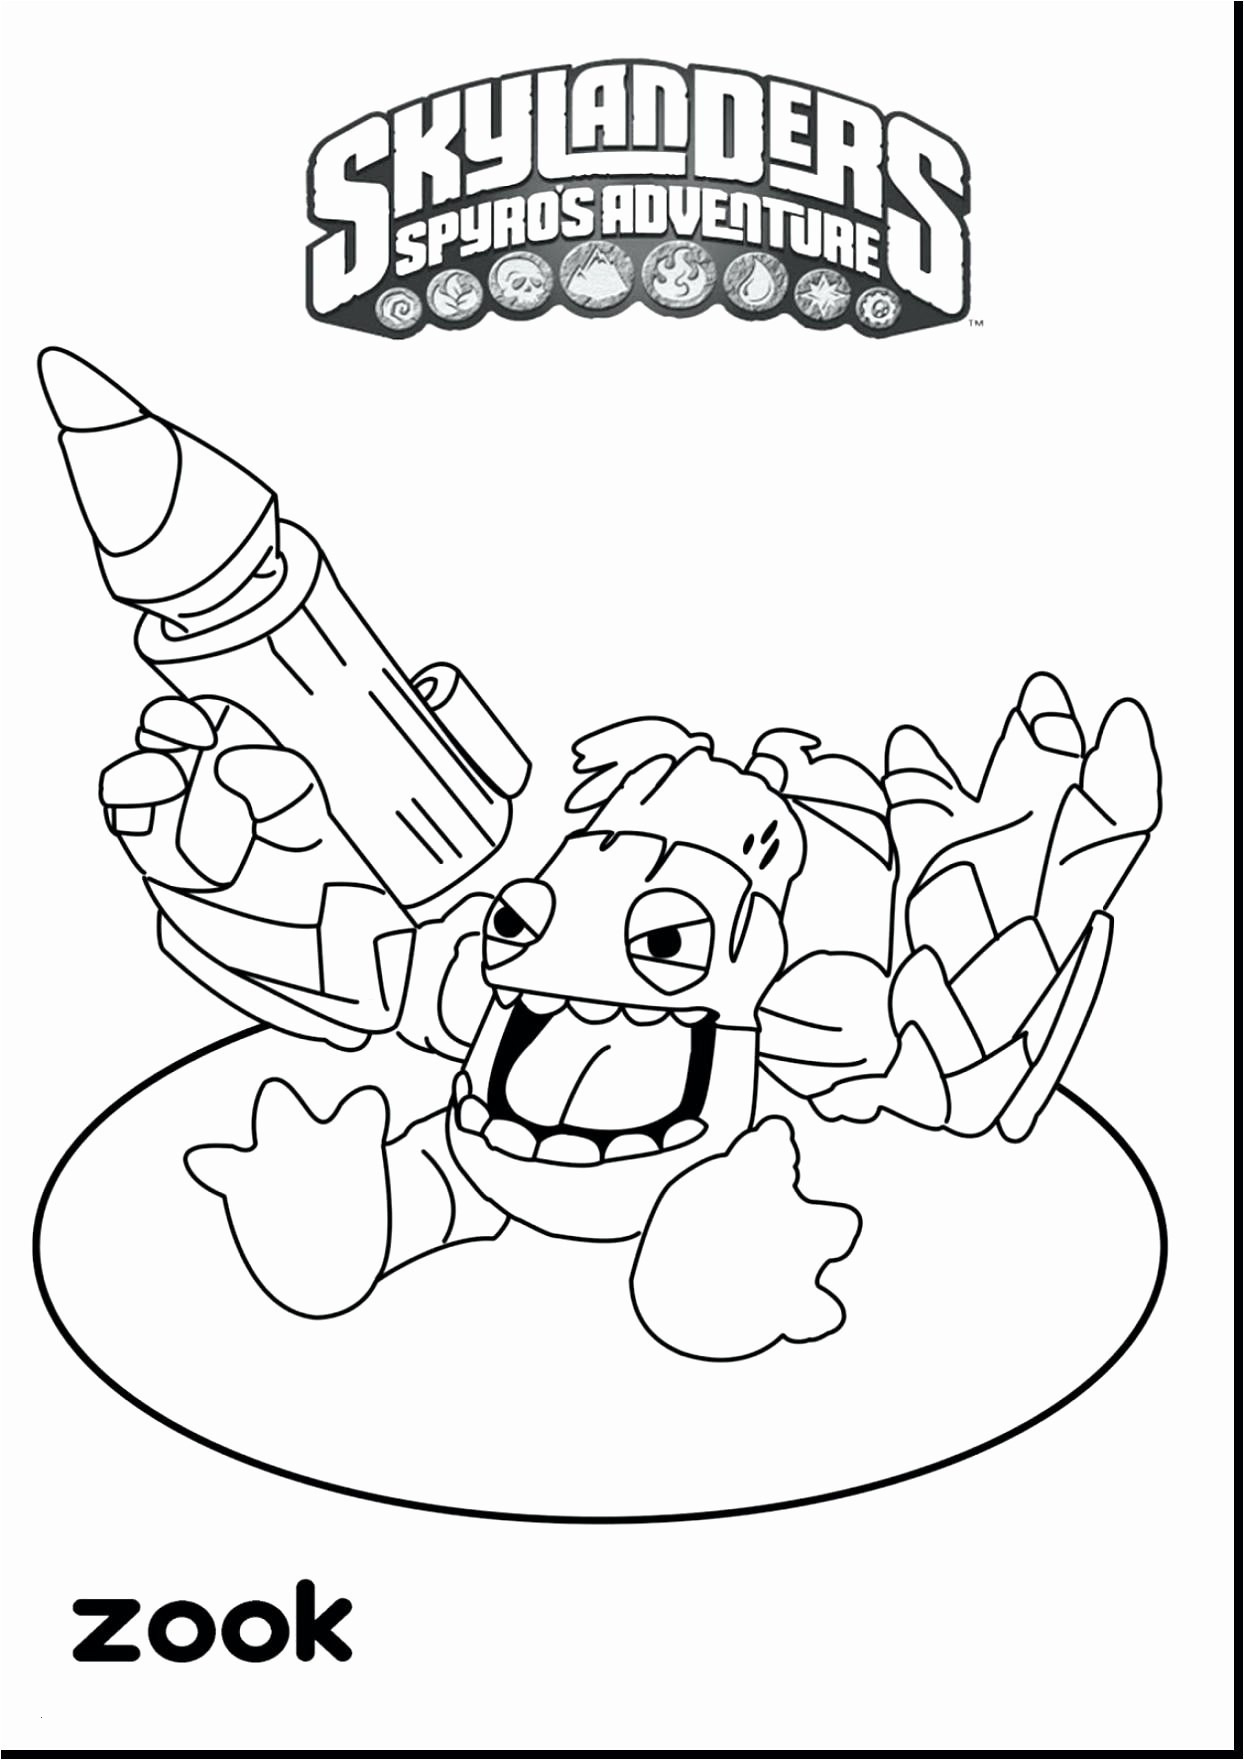 mothers day printable coloring pages Download-Mothers Day Coloring Pages Free 7-g